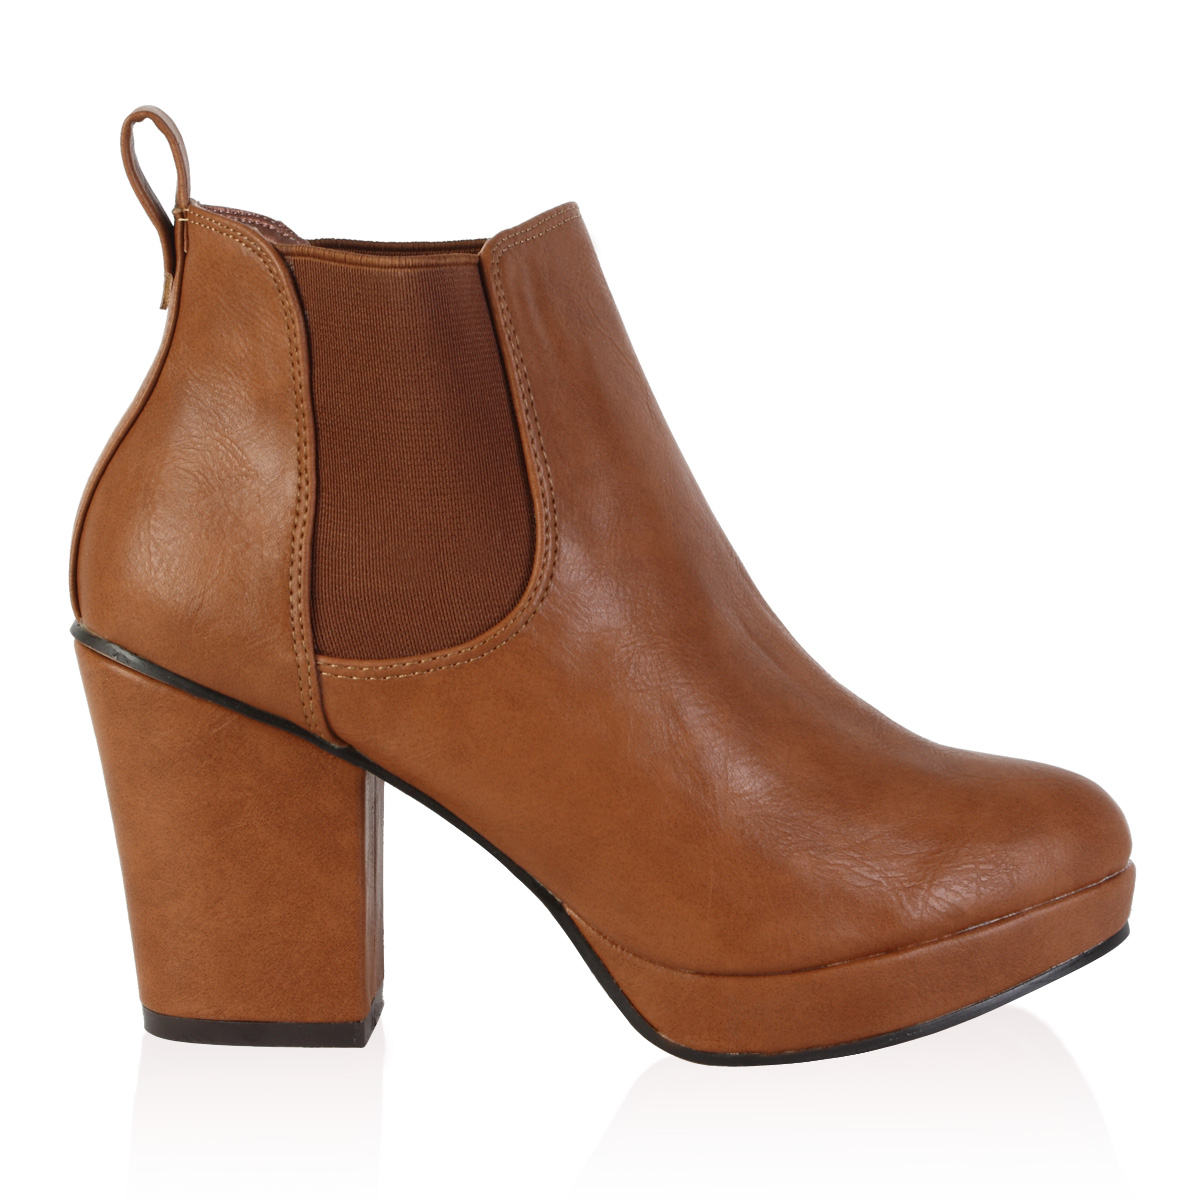 Brown Ankle Boots Heels - Boot Hto